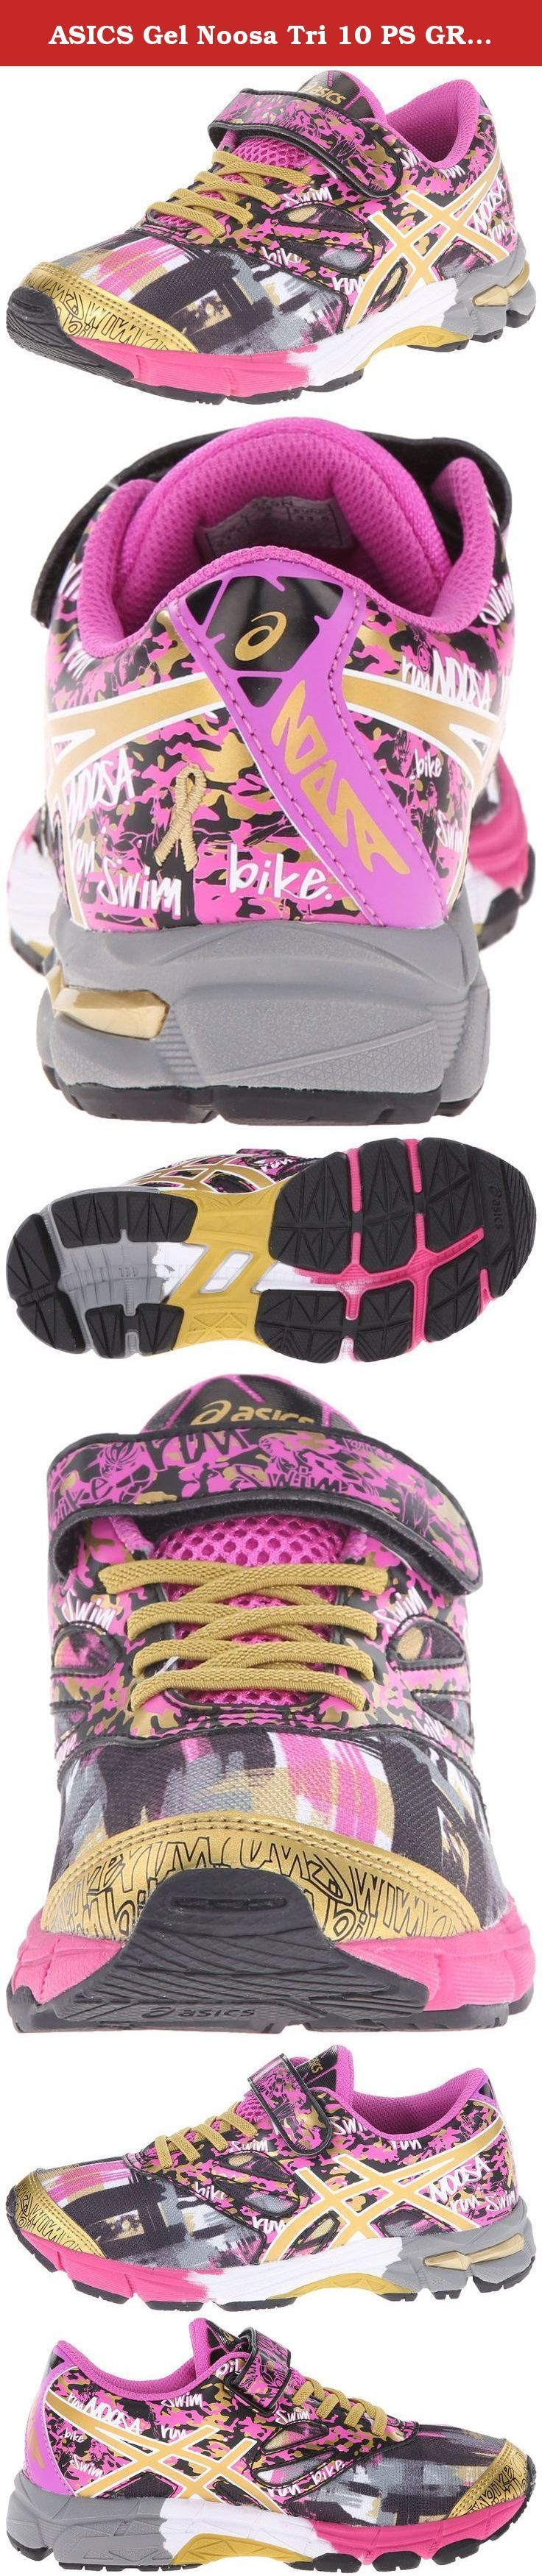 ASICS Gel Noosa Tri 10 PS GR Triathlon Shoe (Toddler/Little Kid), Pink Glow/Gold/Gold Ribbon, 3 M US Little Kid. The ASICS GEL-Noosa Tri 10 PS GR shoes are the perfect running shoes for your kids. Updated with a seamless construction and glow-in-the-dark feature, these shoes provide an excellent design. It features the Rearfoot GEL Cushioning System that offers protection to the heel and offers comfort. These shoes are made using the Trusstic System technology, which borders the midfoot…